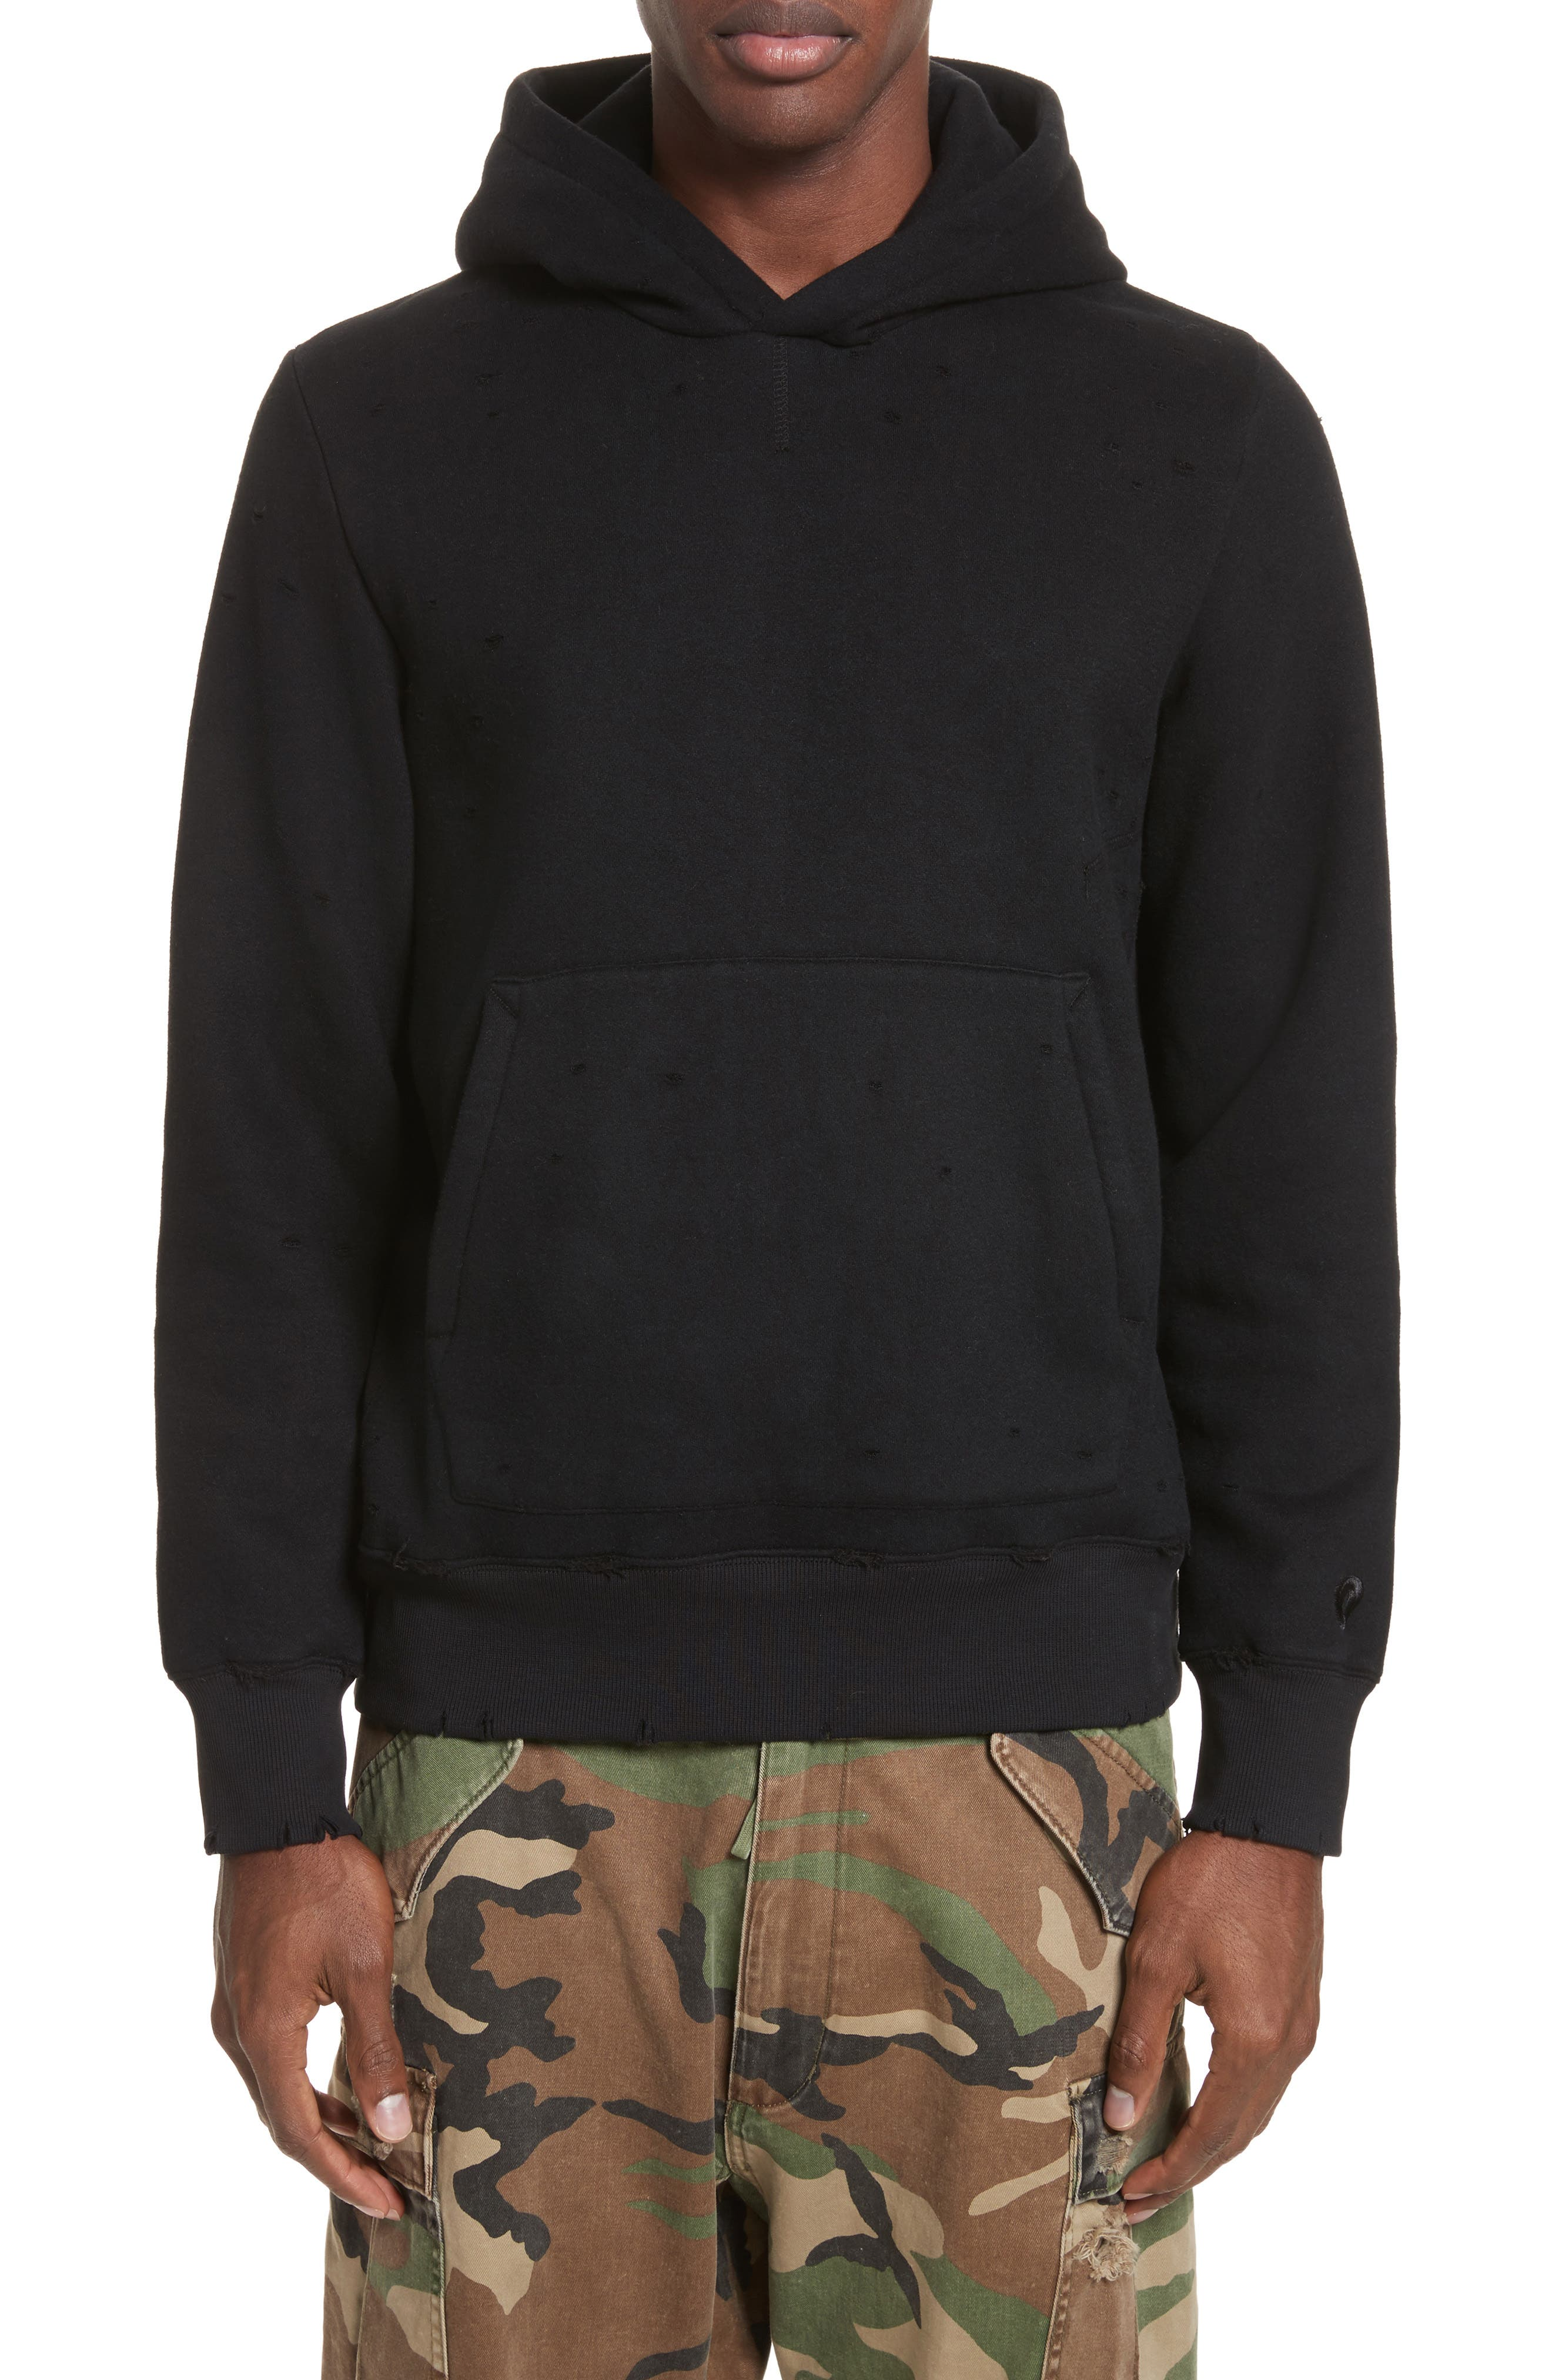 OVADIA & SONS, Distressed Hoodie, Main thumbnail 1, color, BLACK